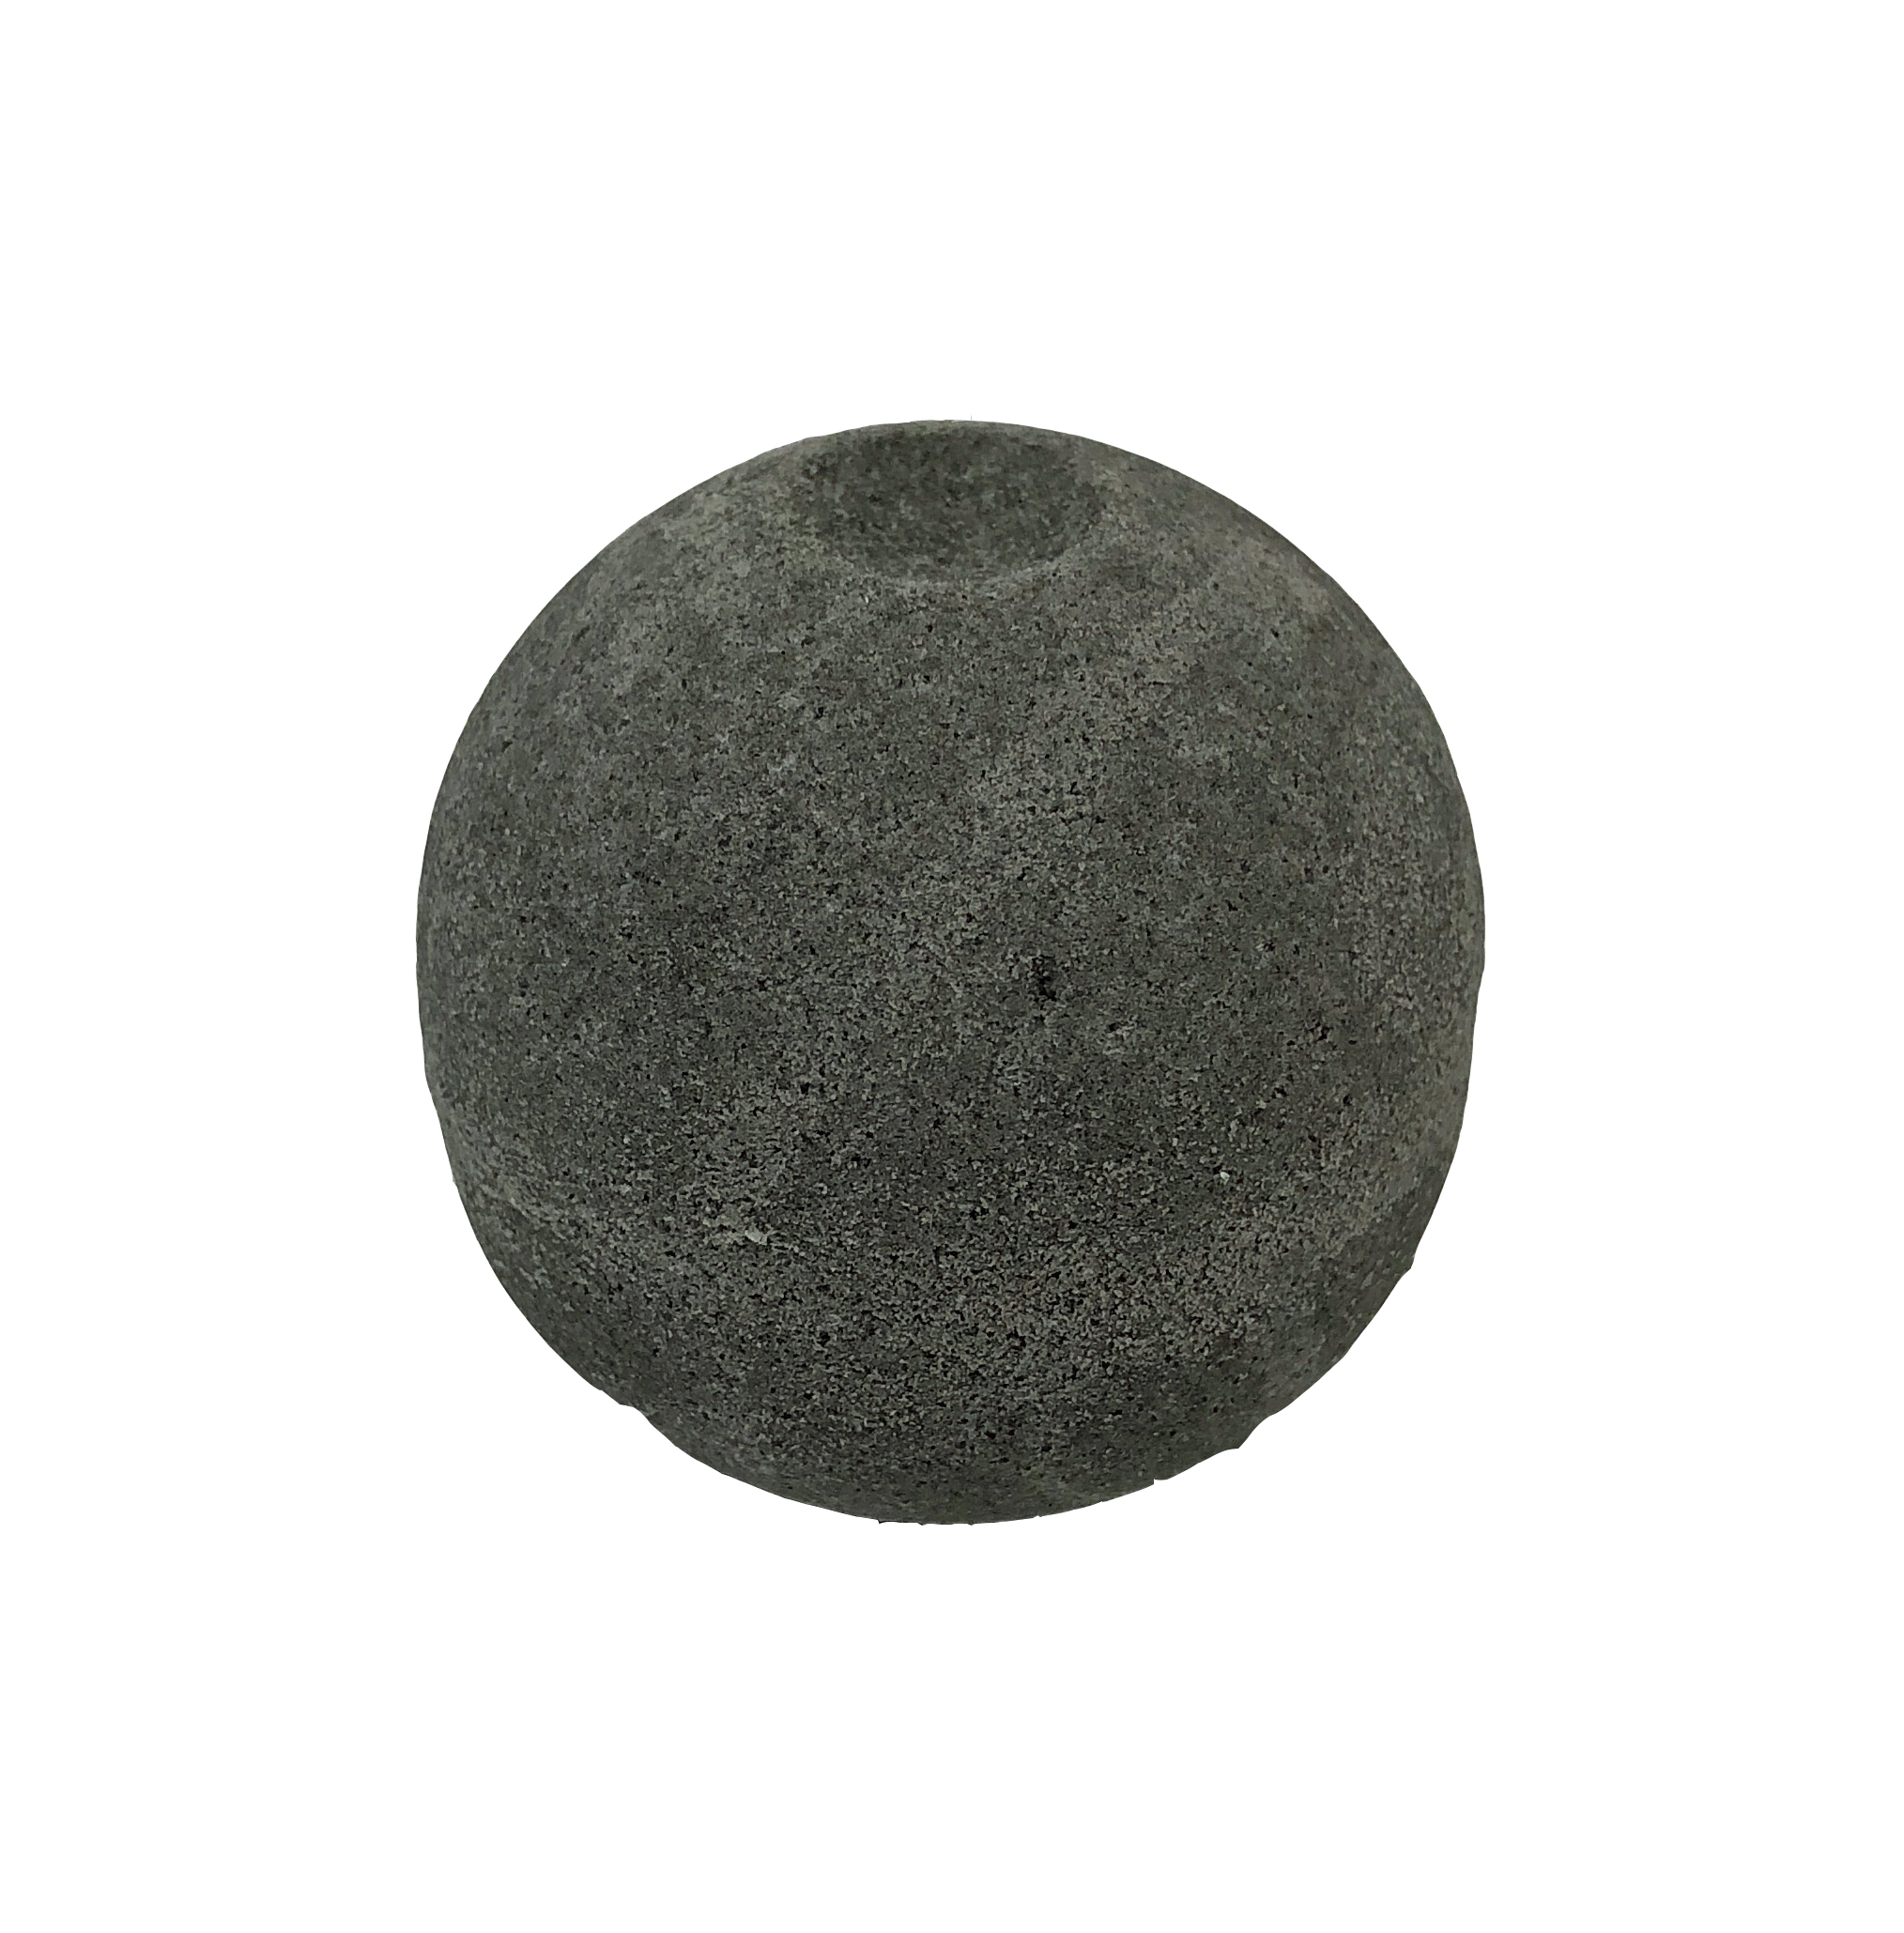 Detox - This deep-cleansing spa bomb treats oily skin and those who are feeling congested. A blend of sea clay, kaolin clay, and charcoal absorbs excess oils and draws toxins from the skin. Non-pore-clogging moisturizers like shea, jojoba, and castor replenish skin's balance without feeling too heavy.